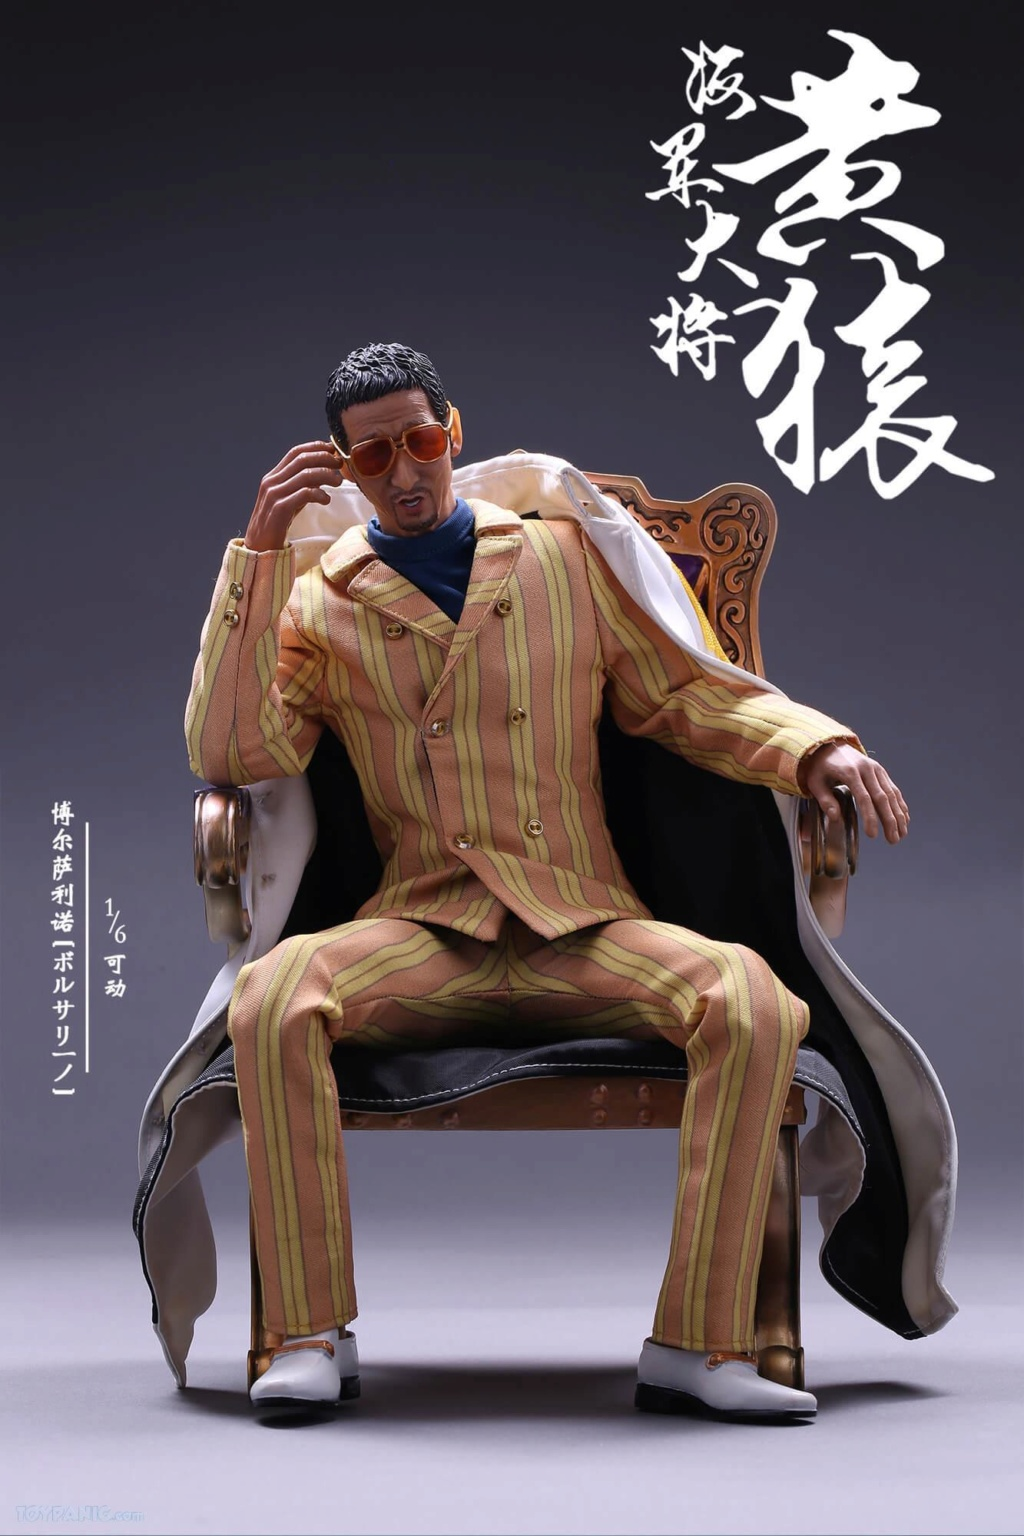 JokerToys - NEW PRODUCT: 1/6 Scale One Piece - Borsalino (Kizaru Yellow Monkey)  From JOKER TOYS  Code: JOK1810201801 10192042